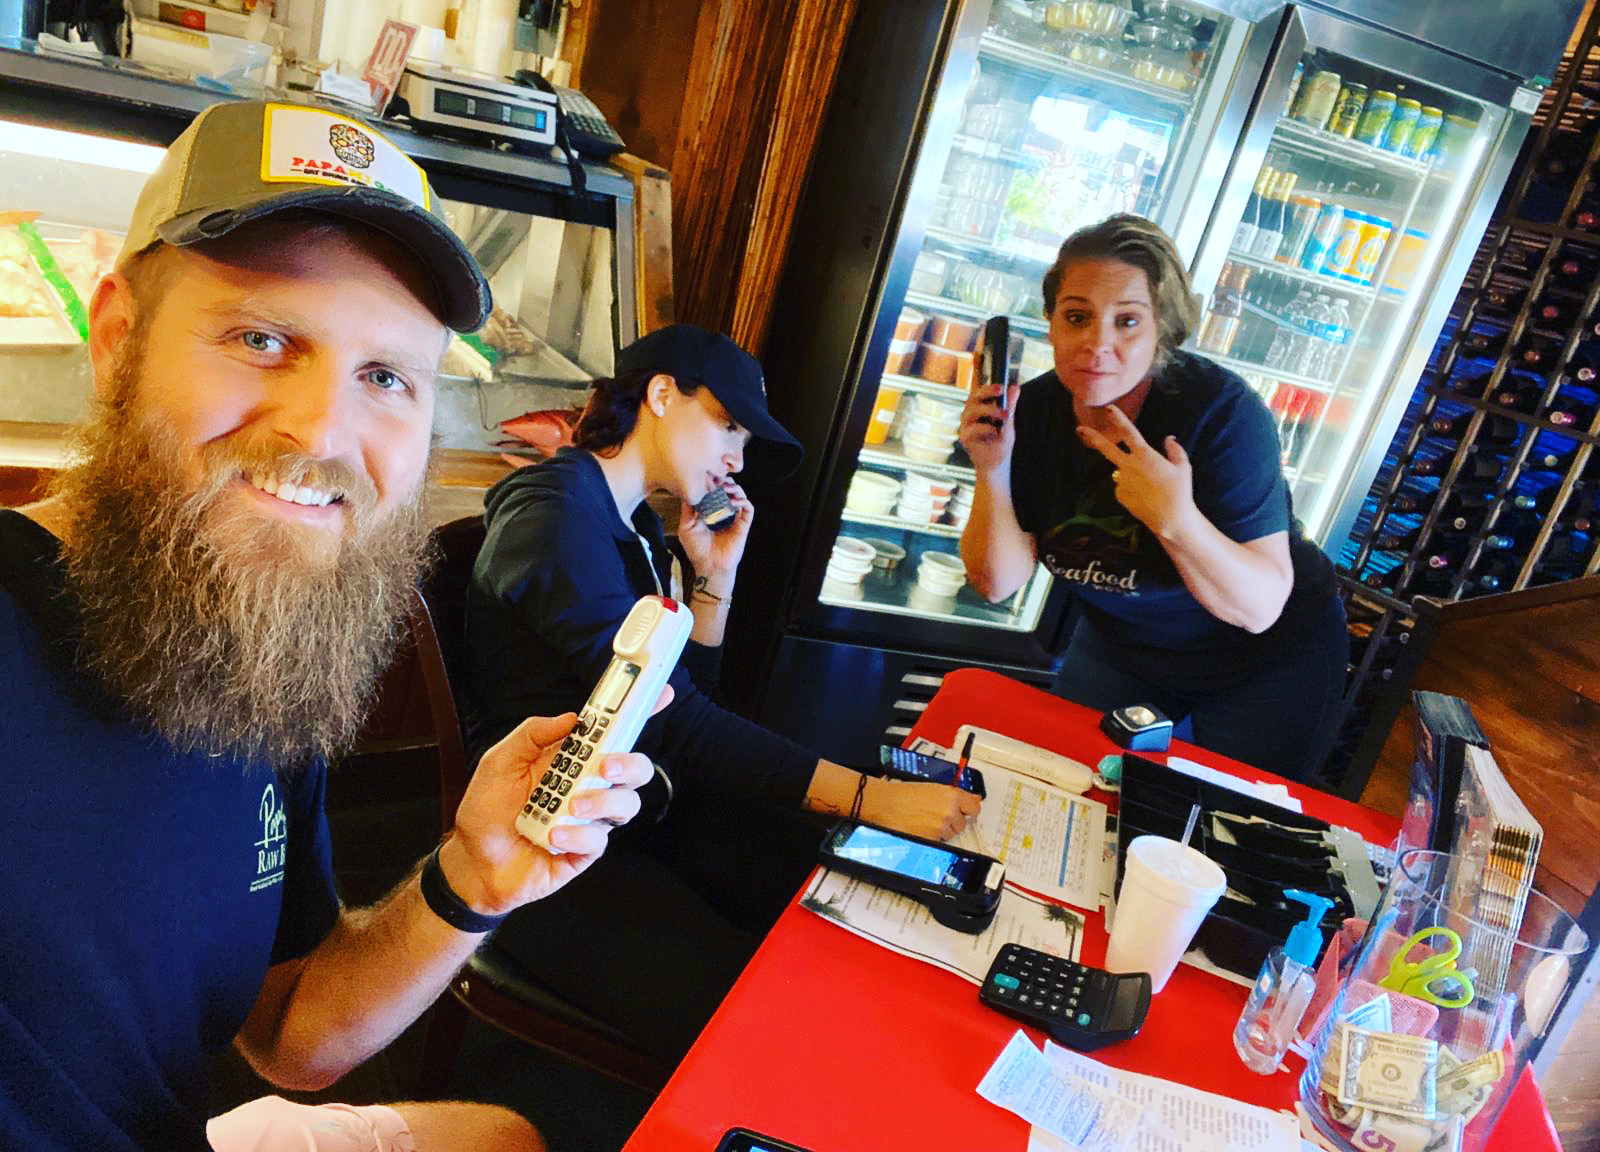 Papa's Raw Bar staff answering phones for takeout orders